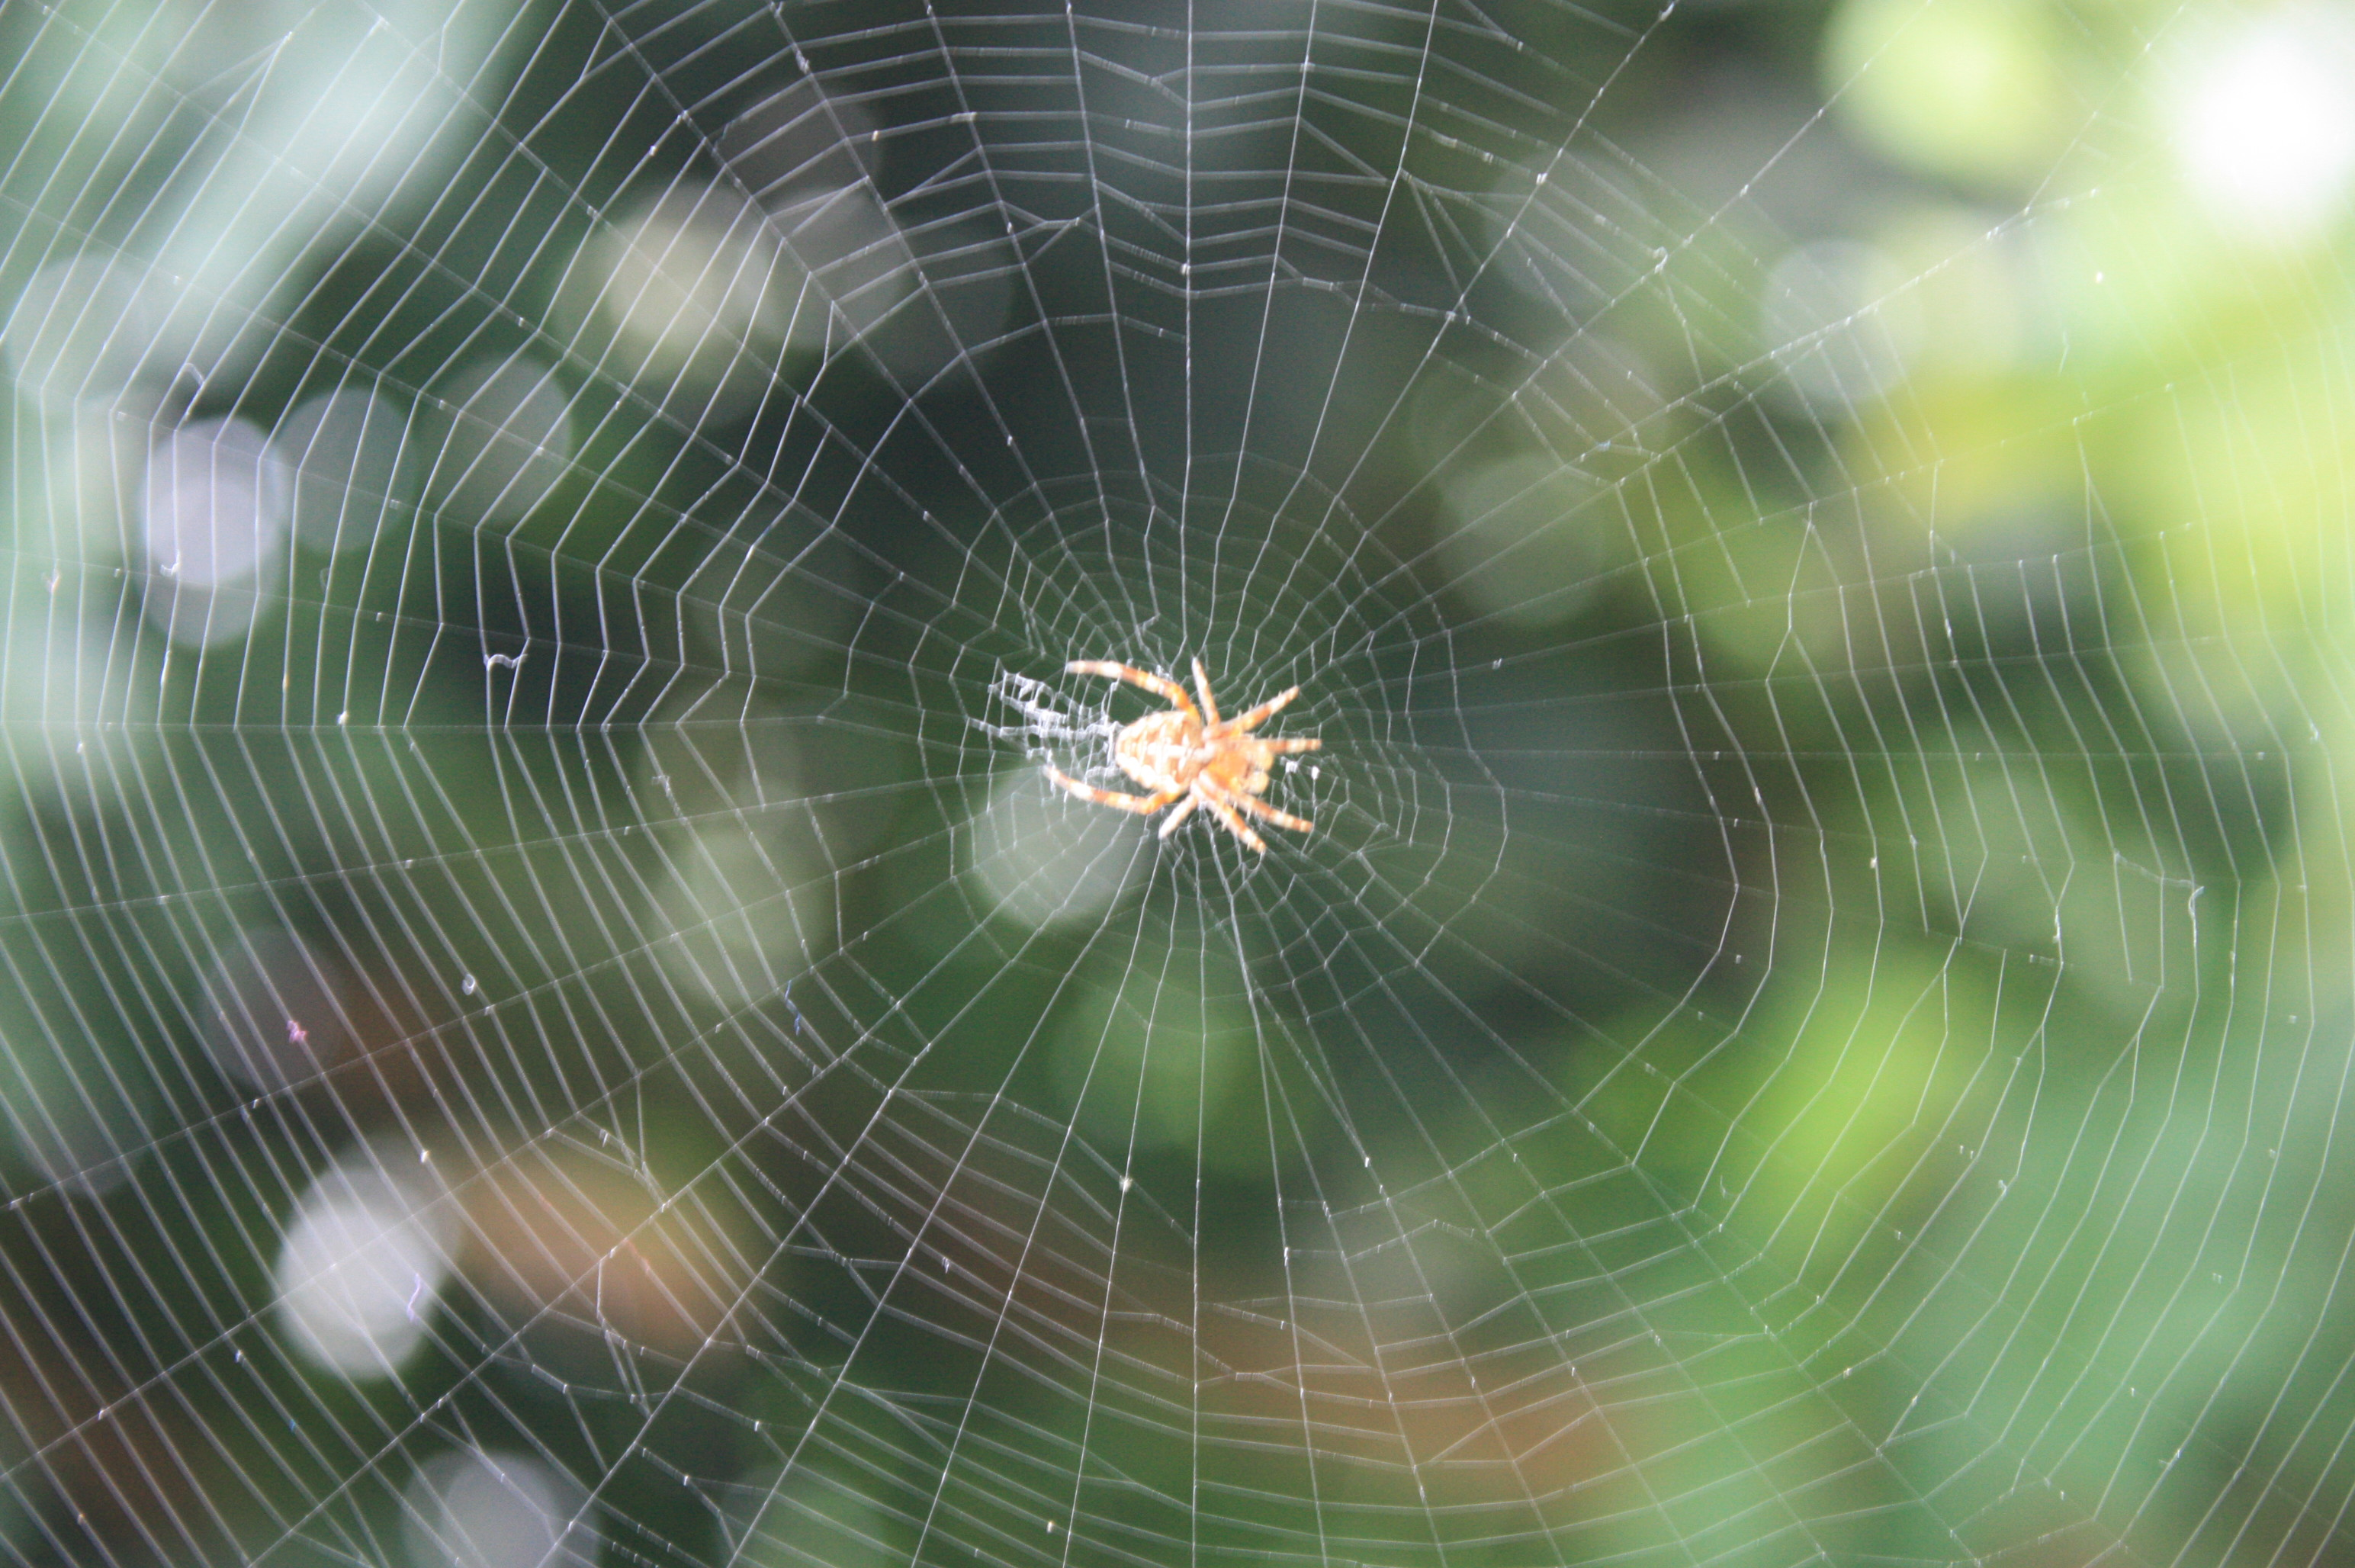 Spider web - Wikipedia